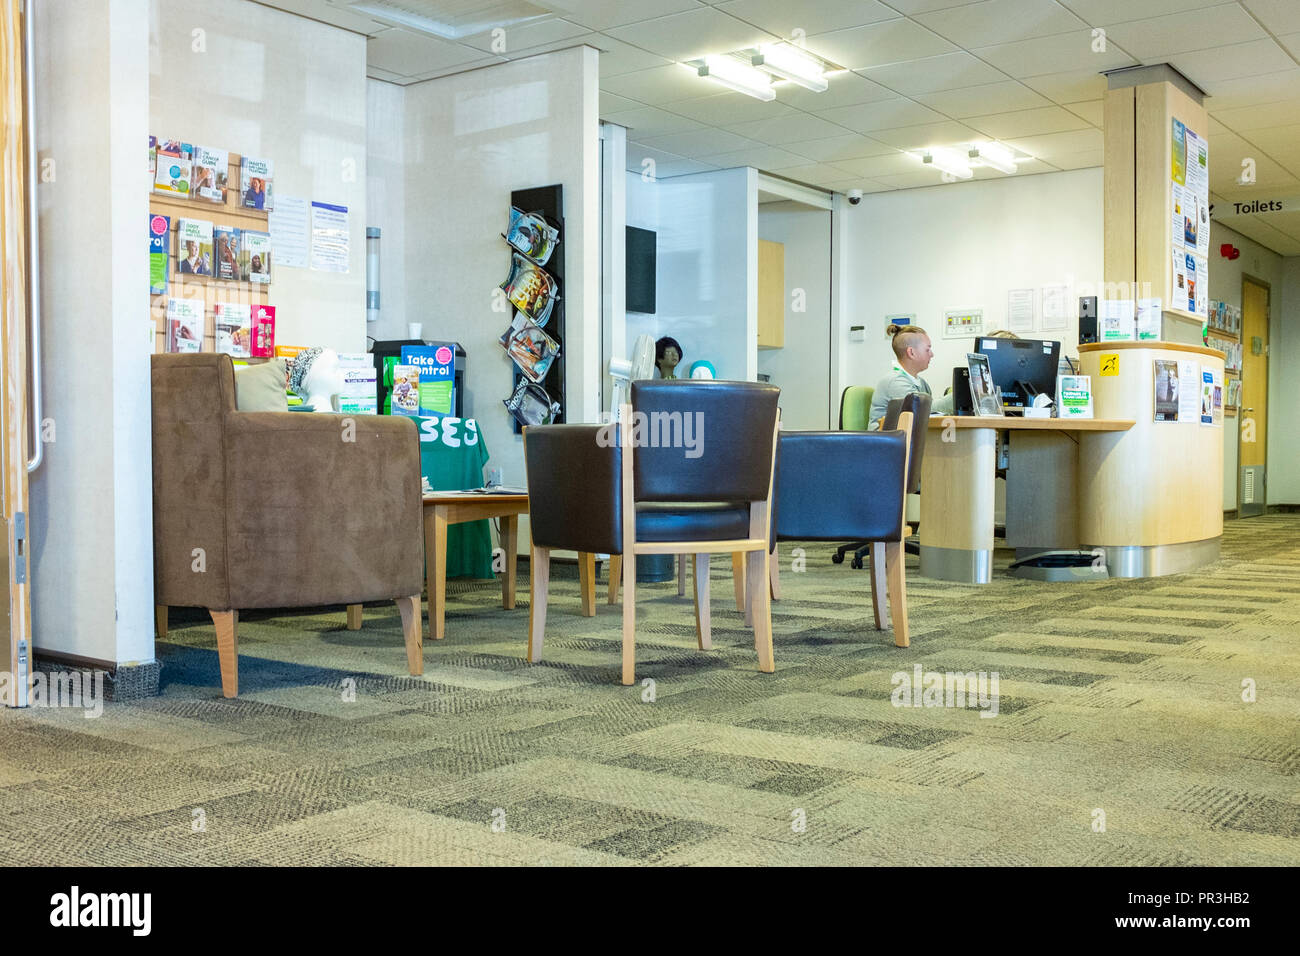 Reception at Macmillan Cancer Centre in Leighton Hospital in Crewe Cheshire UK - Stock Image